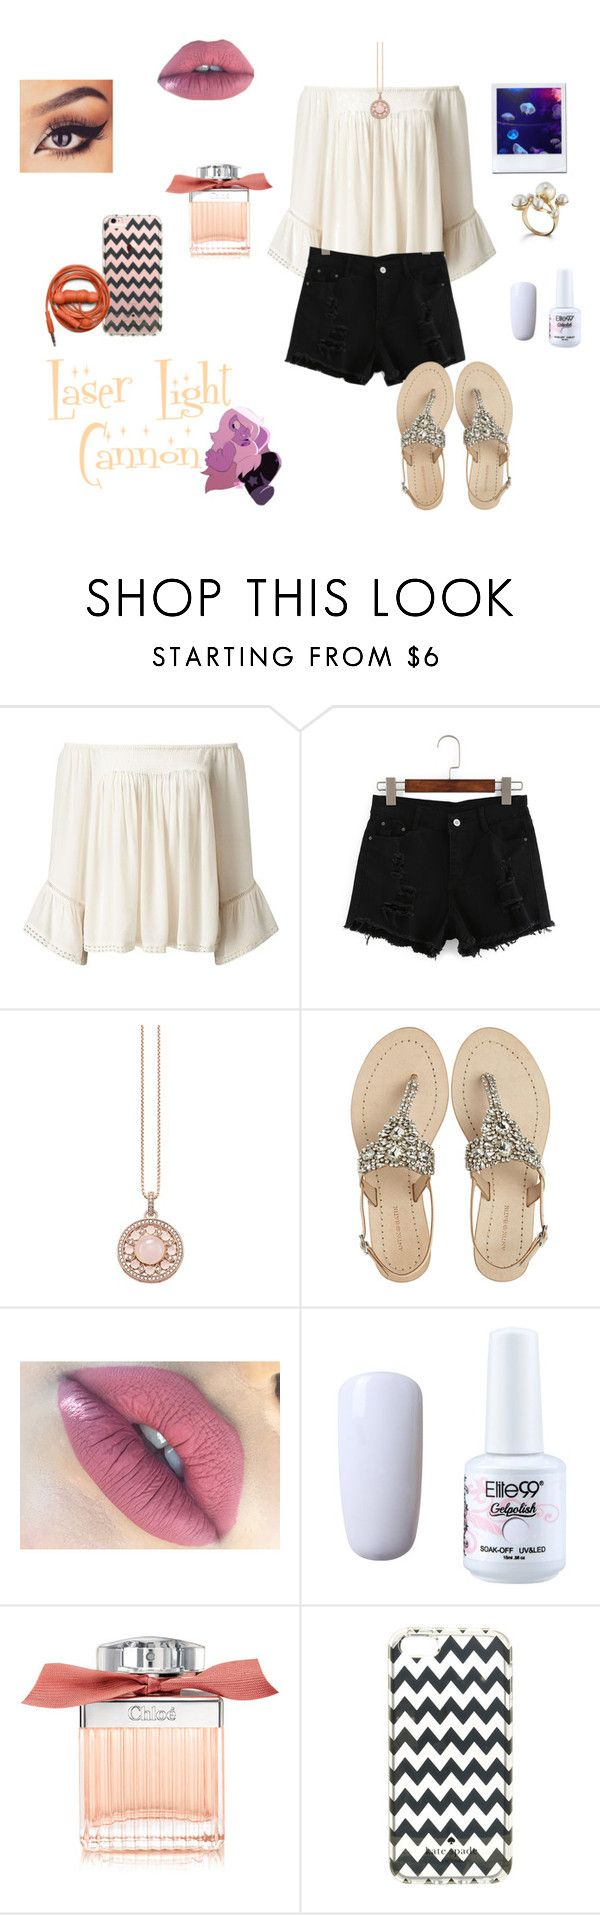 """Steven Universe Episode 2: Laser Light Cannon"" by gravityfallsgirl33 ❤ liked on Polyvore featuring Miss Selfridge, Thomas Sabo, Antik Batik, Chloé, Kate Spade and Urbanears"